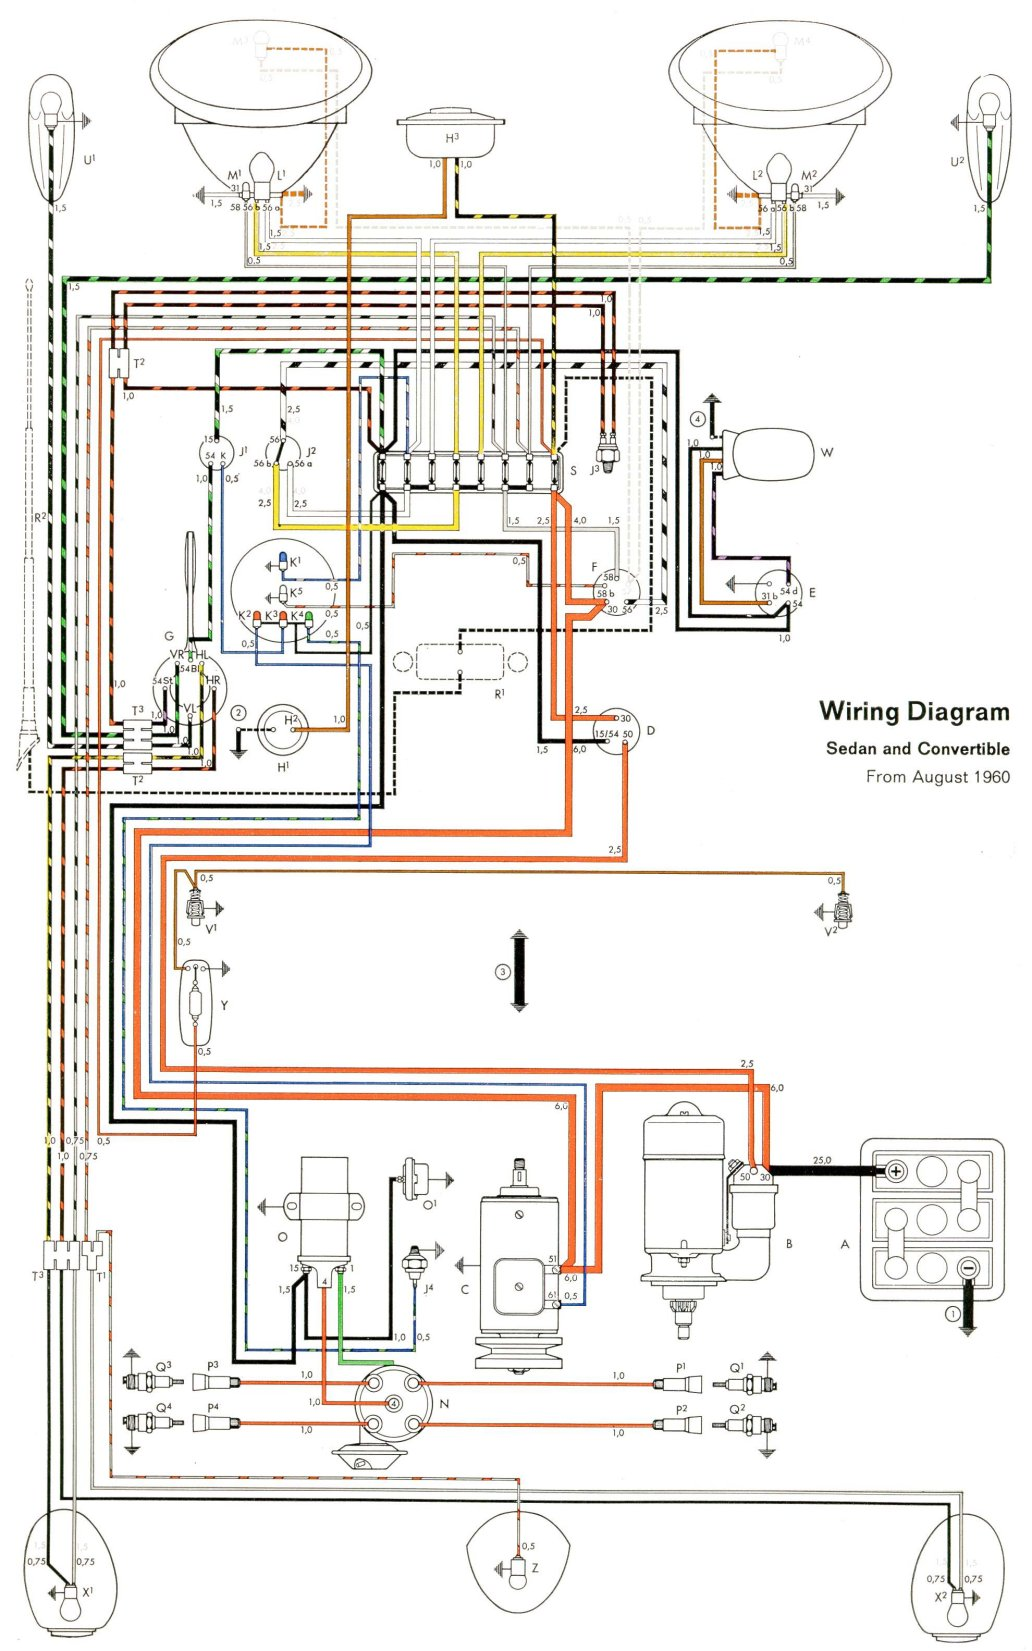 1959 Vw Wiring Diagram Library Land Rover Freelander